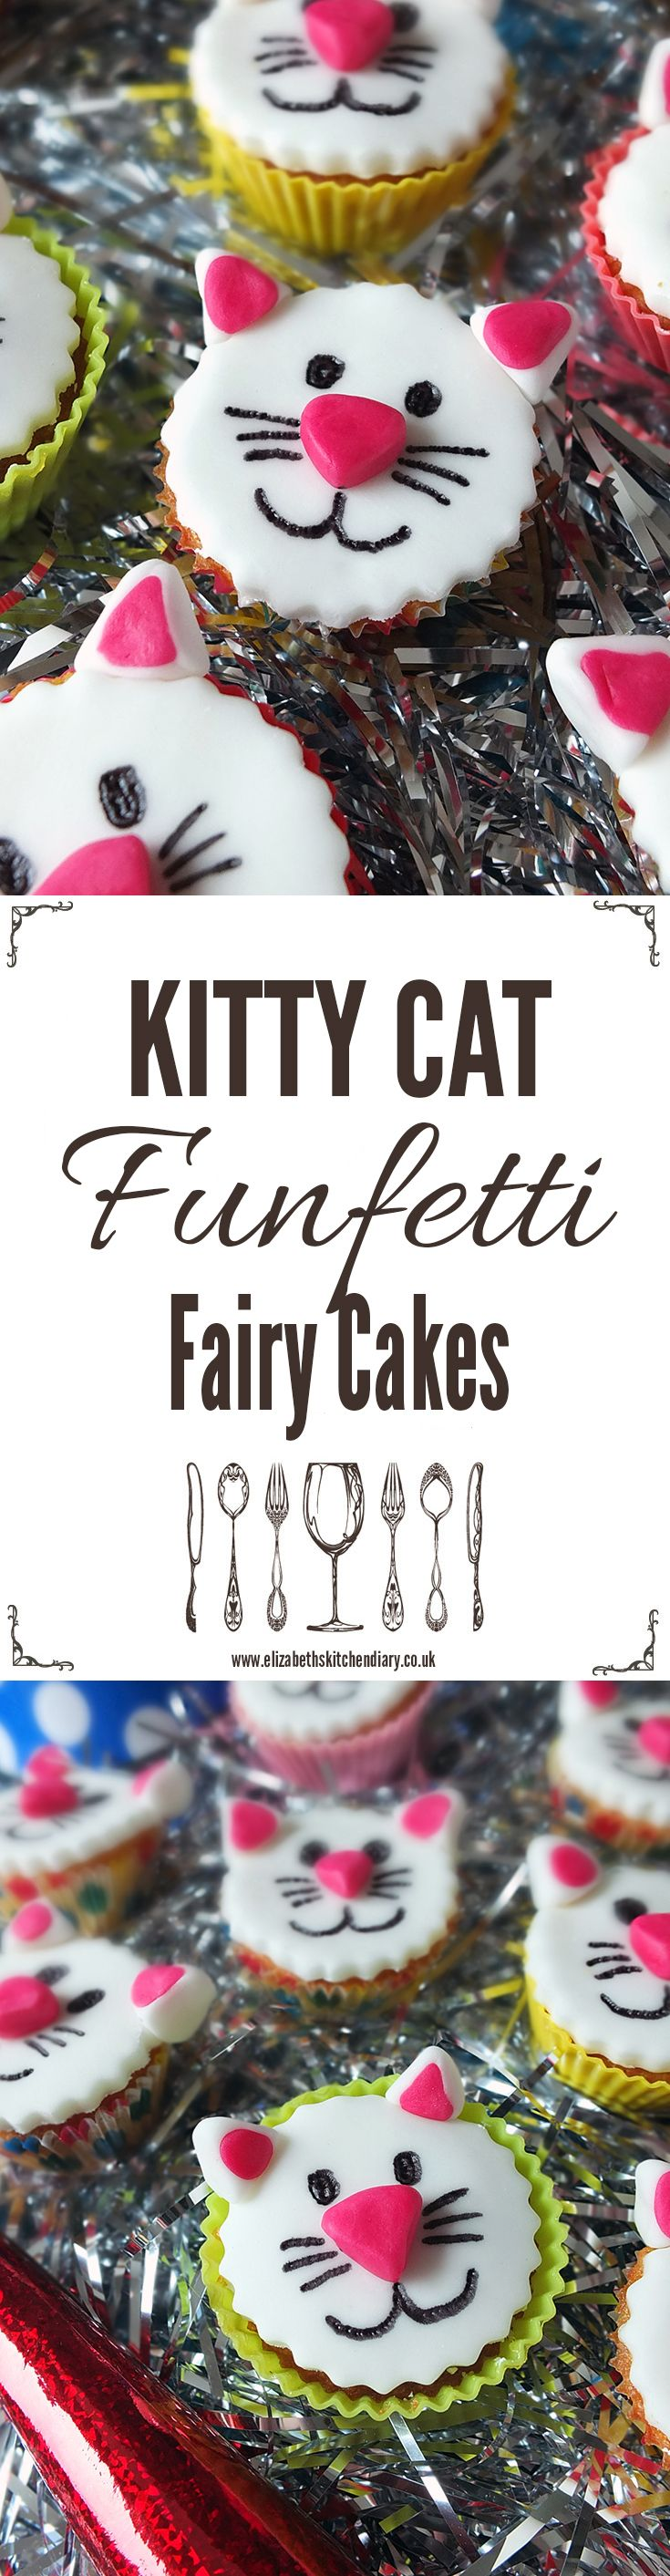 Celebrate your cat's birthday in style with these quick and easy kitty cat funfetti fairy cakes! Great for kids' parties too. In collaboration with Whiskas.